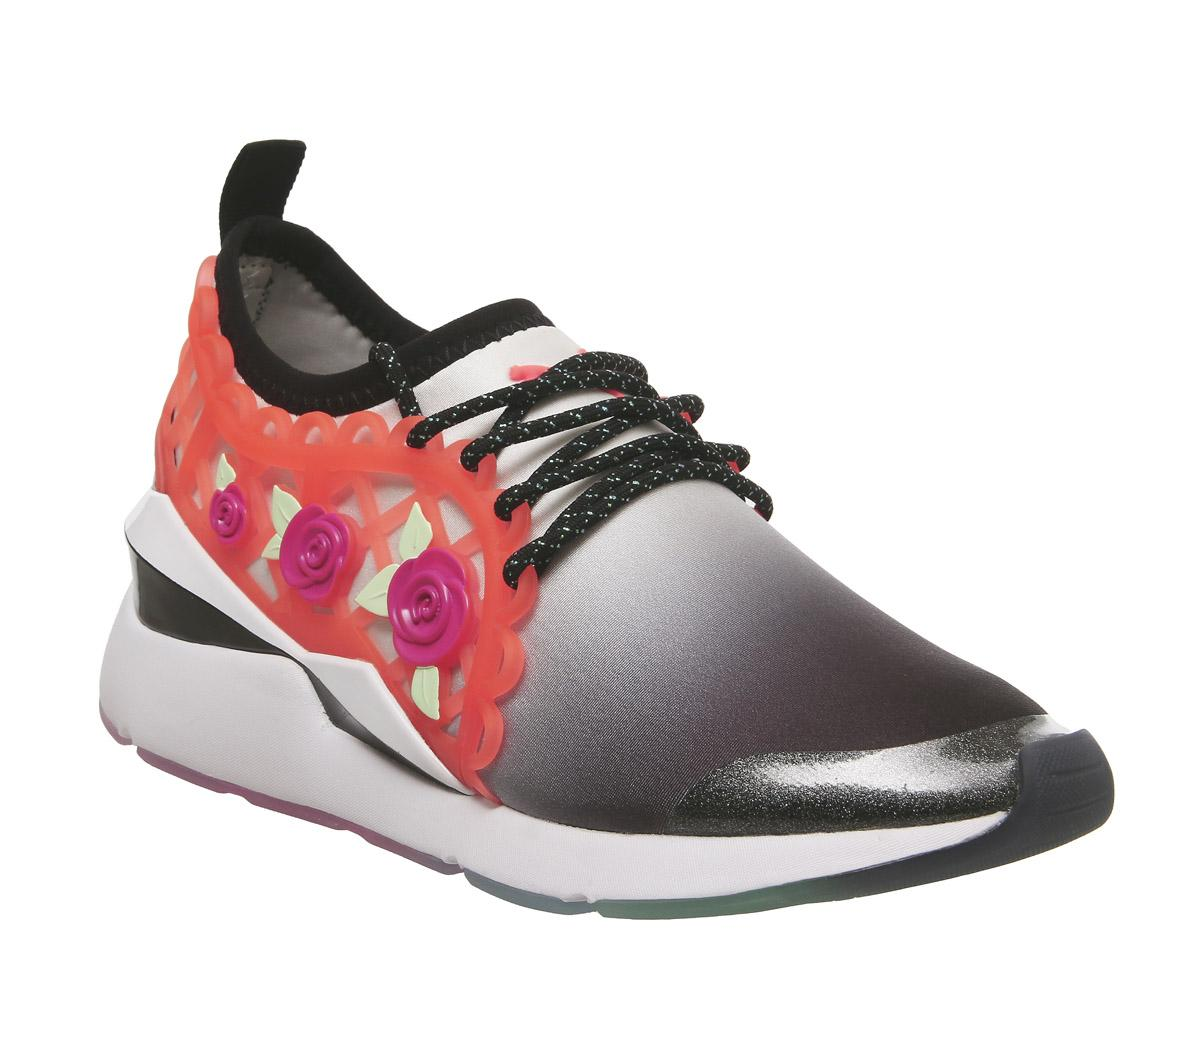 Puma Muse X Strap Trainers